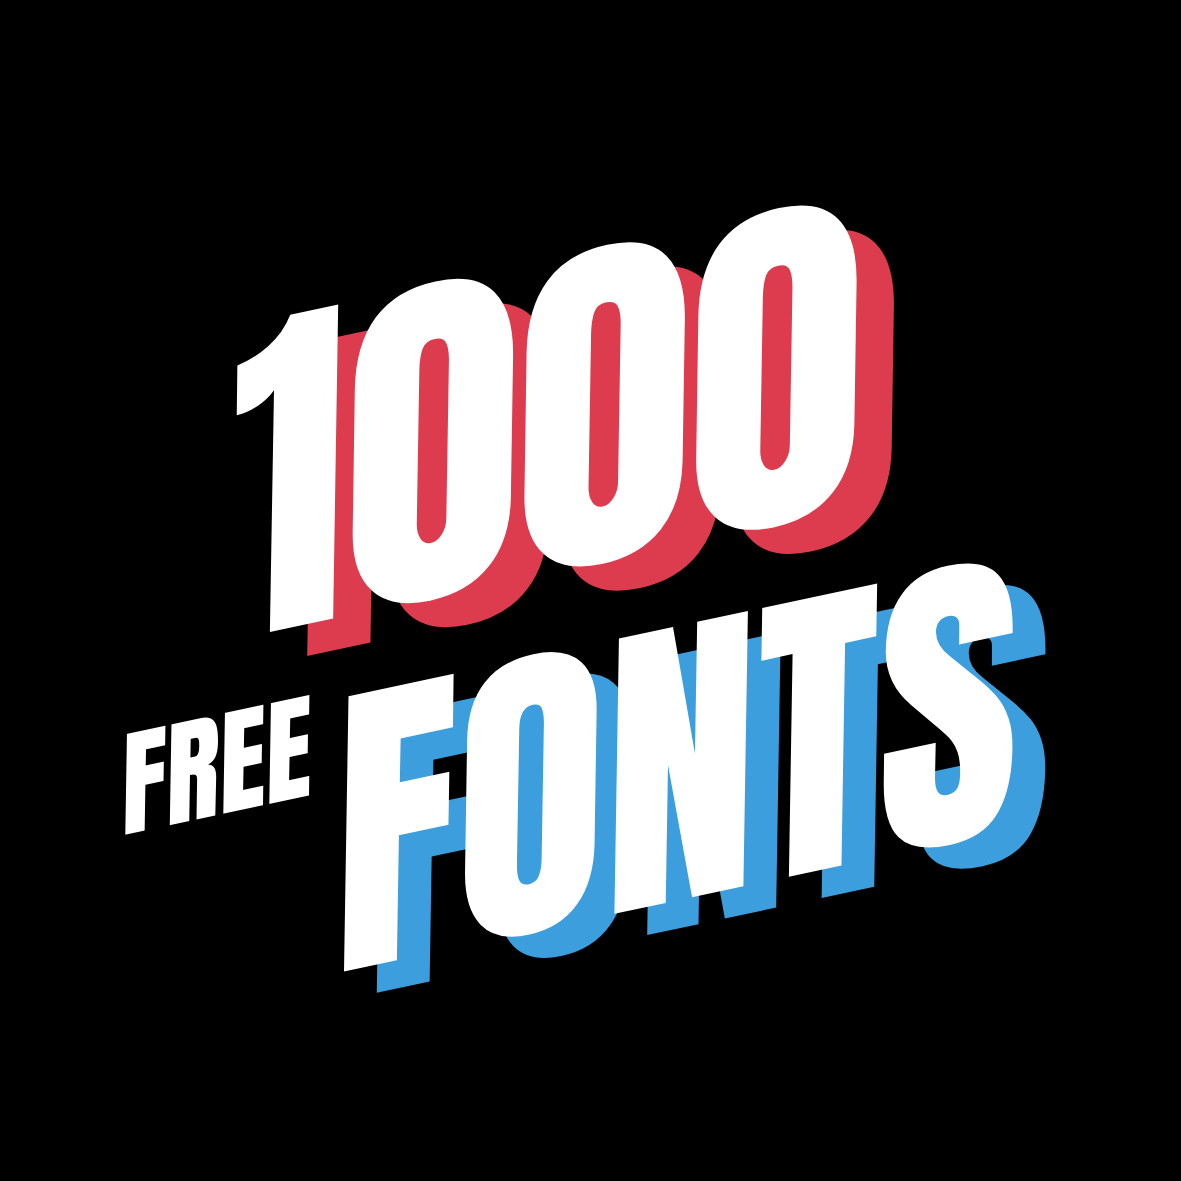 Would You Like to Have 1,000 Fonts for Free?